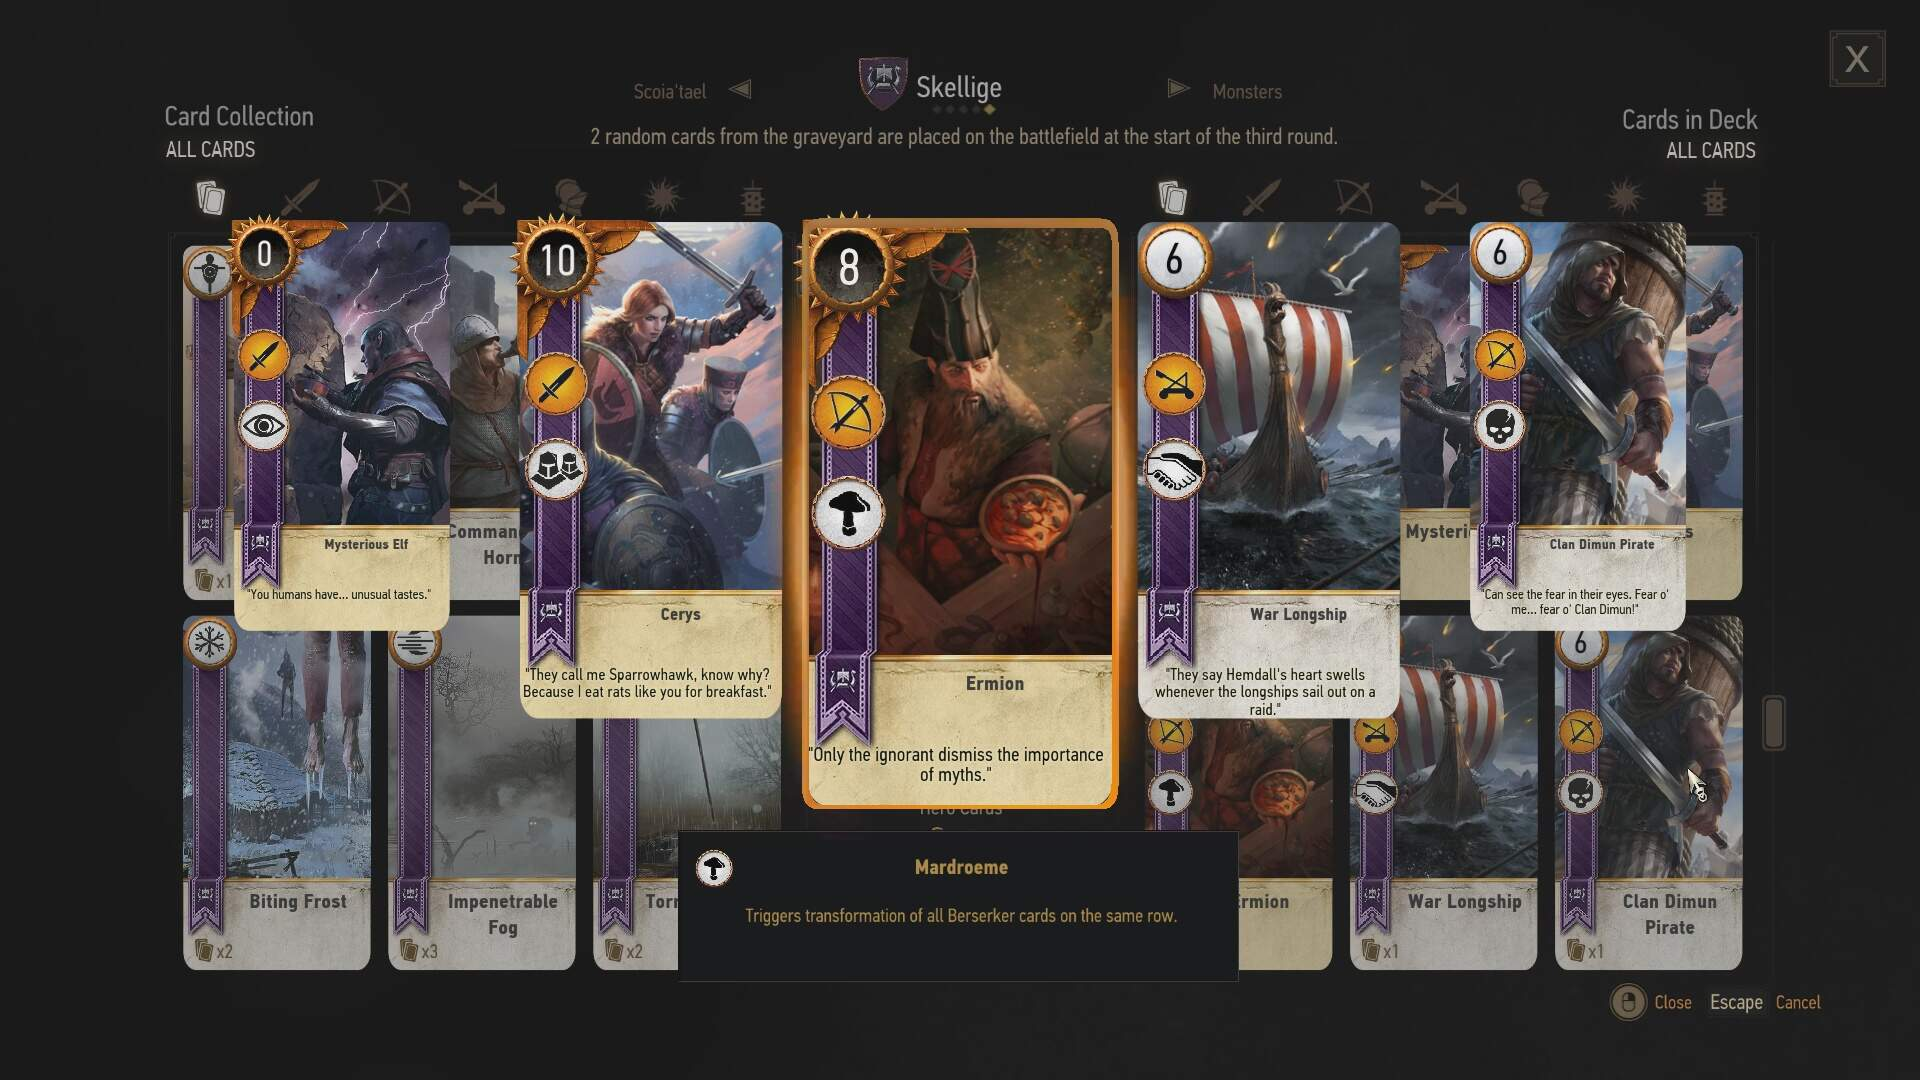 The Witcher 3 Card Game Spinoff, Gwent, Enters Public Beta